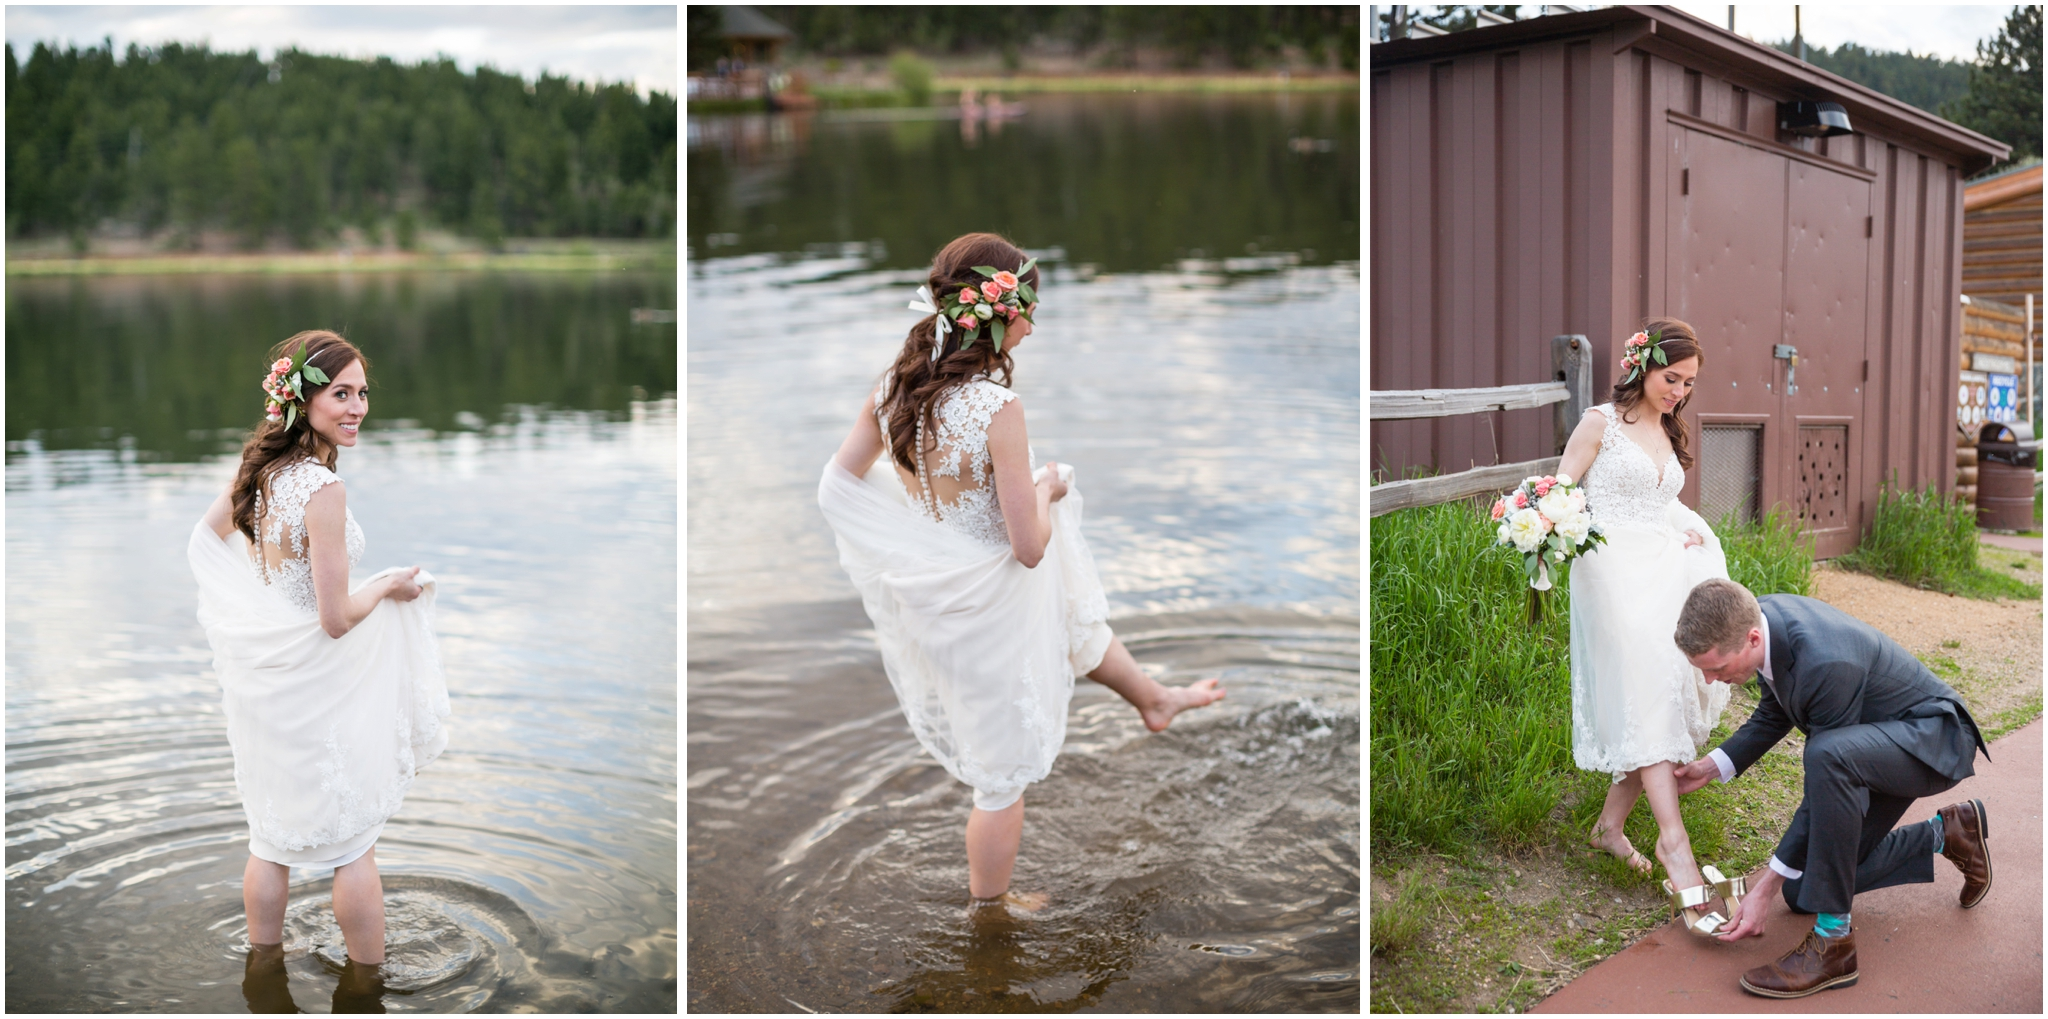 Evergreen_Lake_house_Wedding_Phtoographers_bride_in_the_lake.JPG